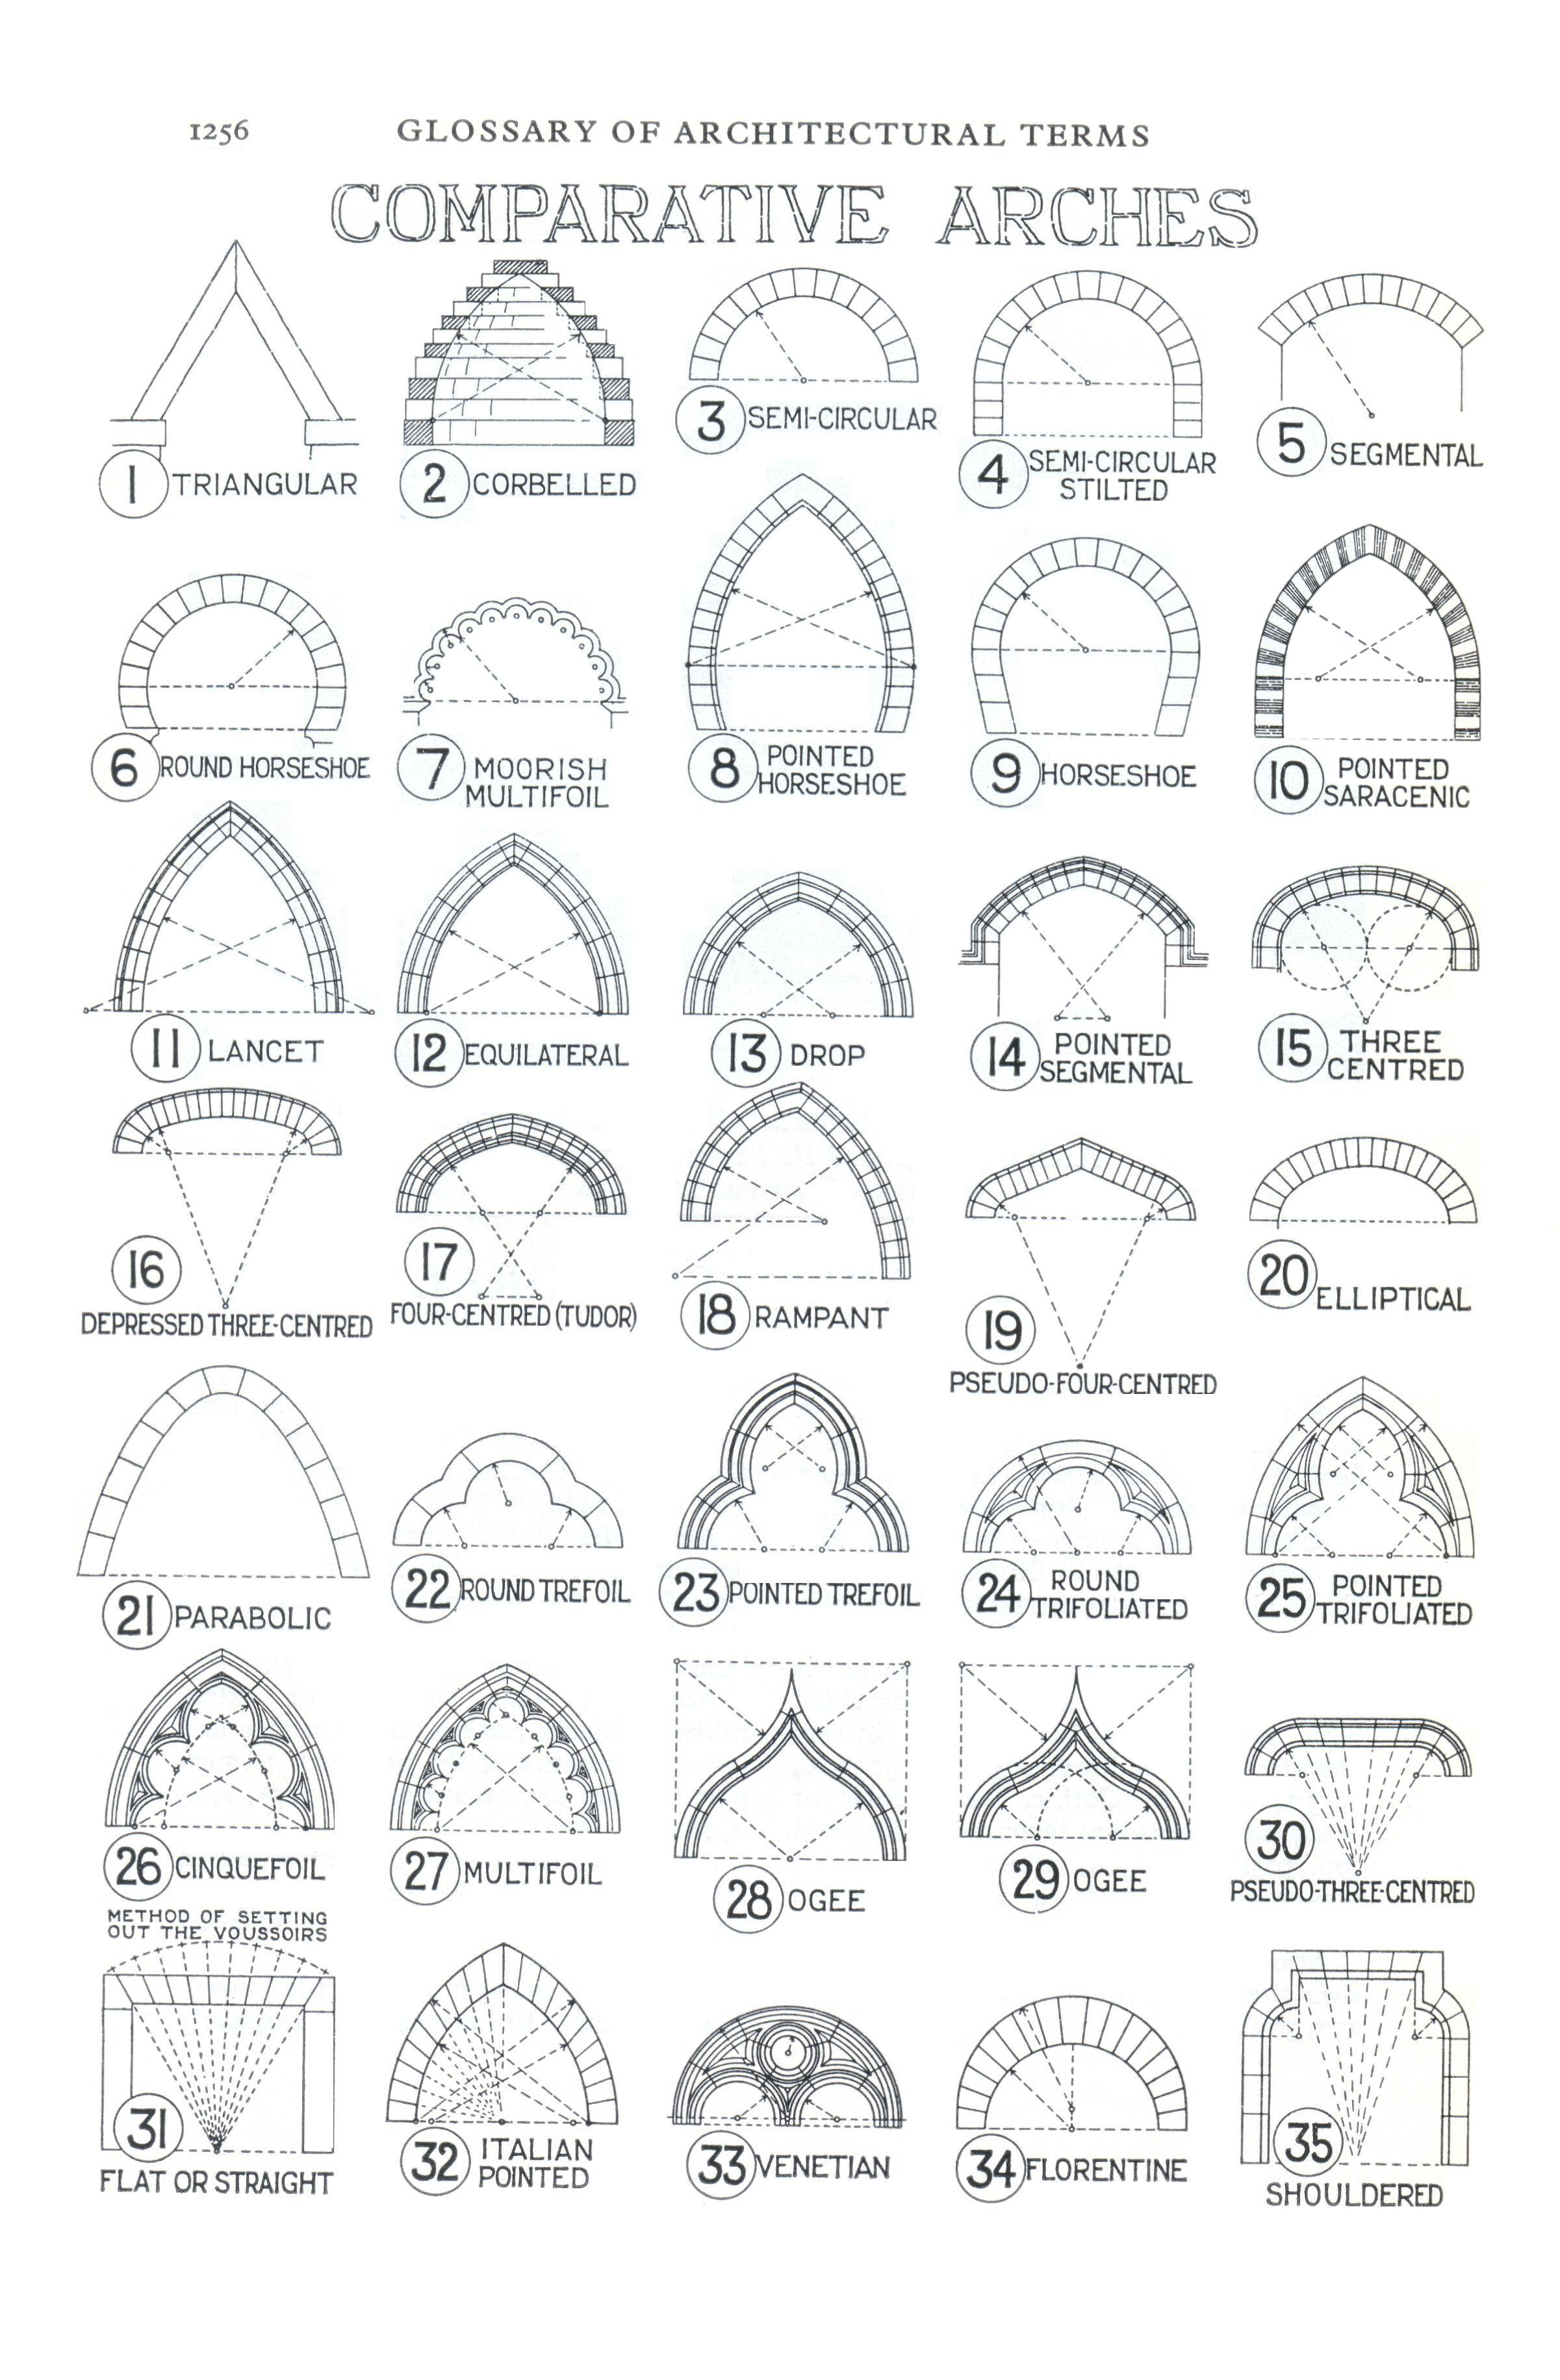 File:Glossary of Architectural Terms - Arches jpg